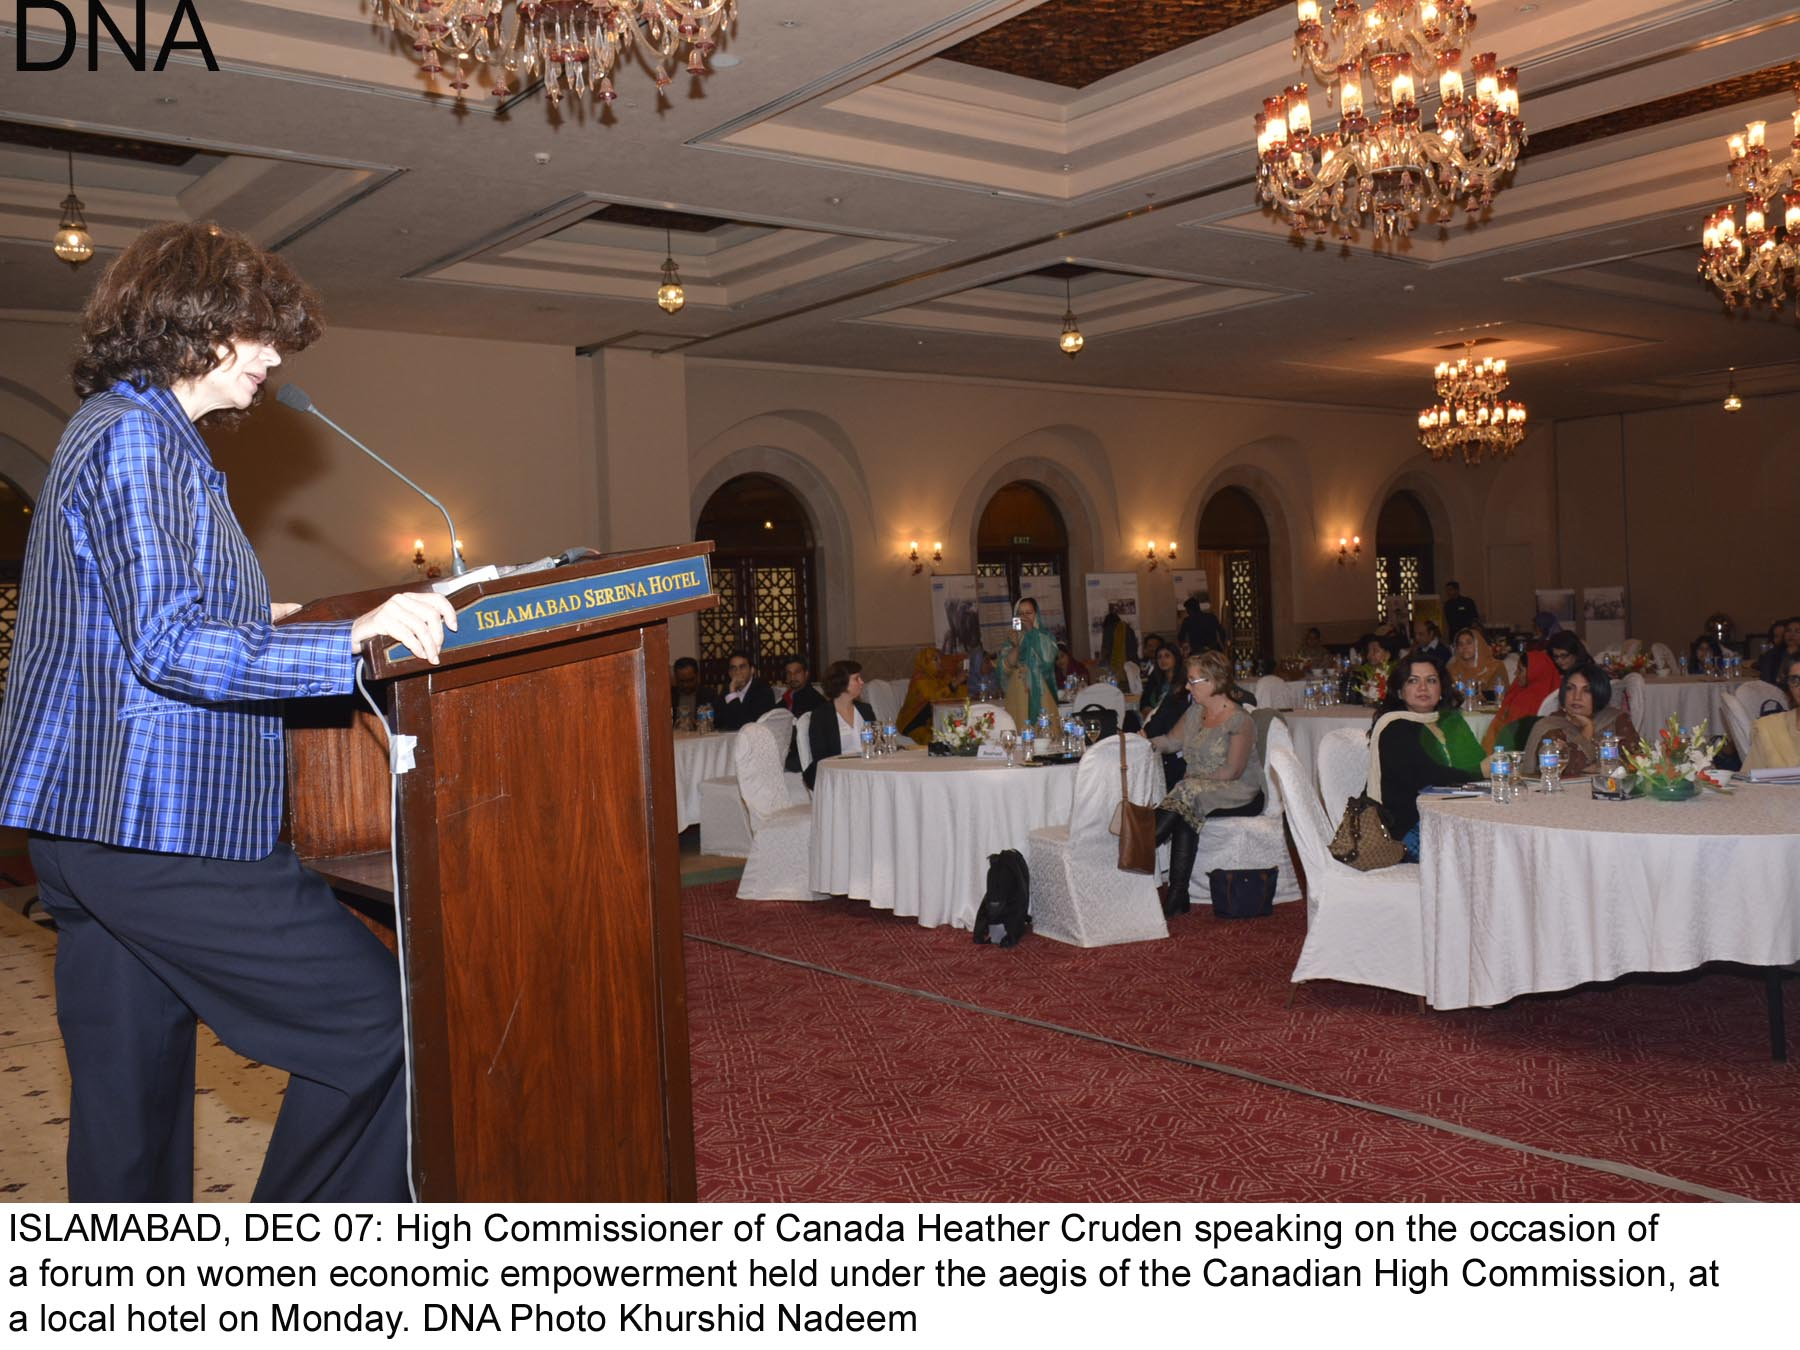 ISLAMABAD, DEC 07: High Commissioner of Canada Heather Cruden speaking on the occasion of  a forum on women economic empowerment held under the aegis of the Canadian High Commission, at a local hotel on Monday. DNA Photo Khurshid Nadeem